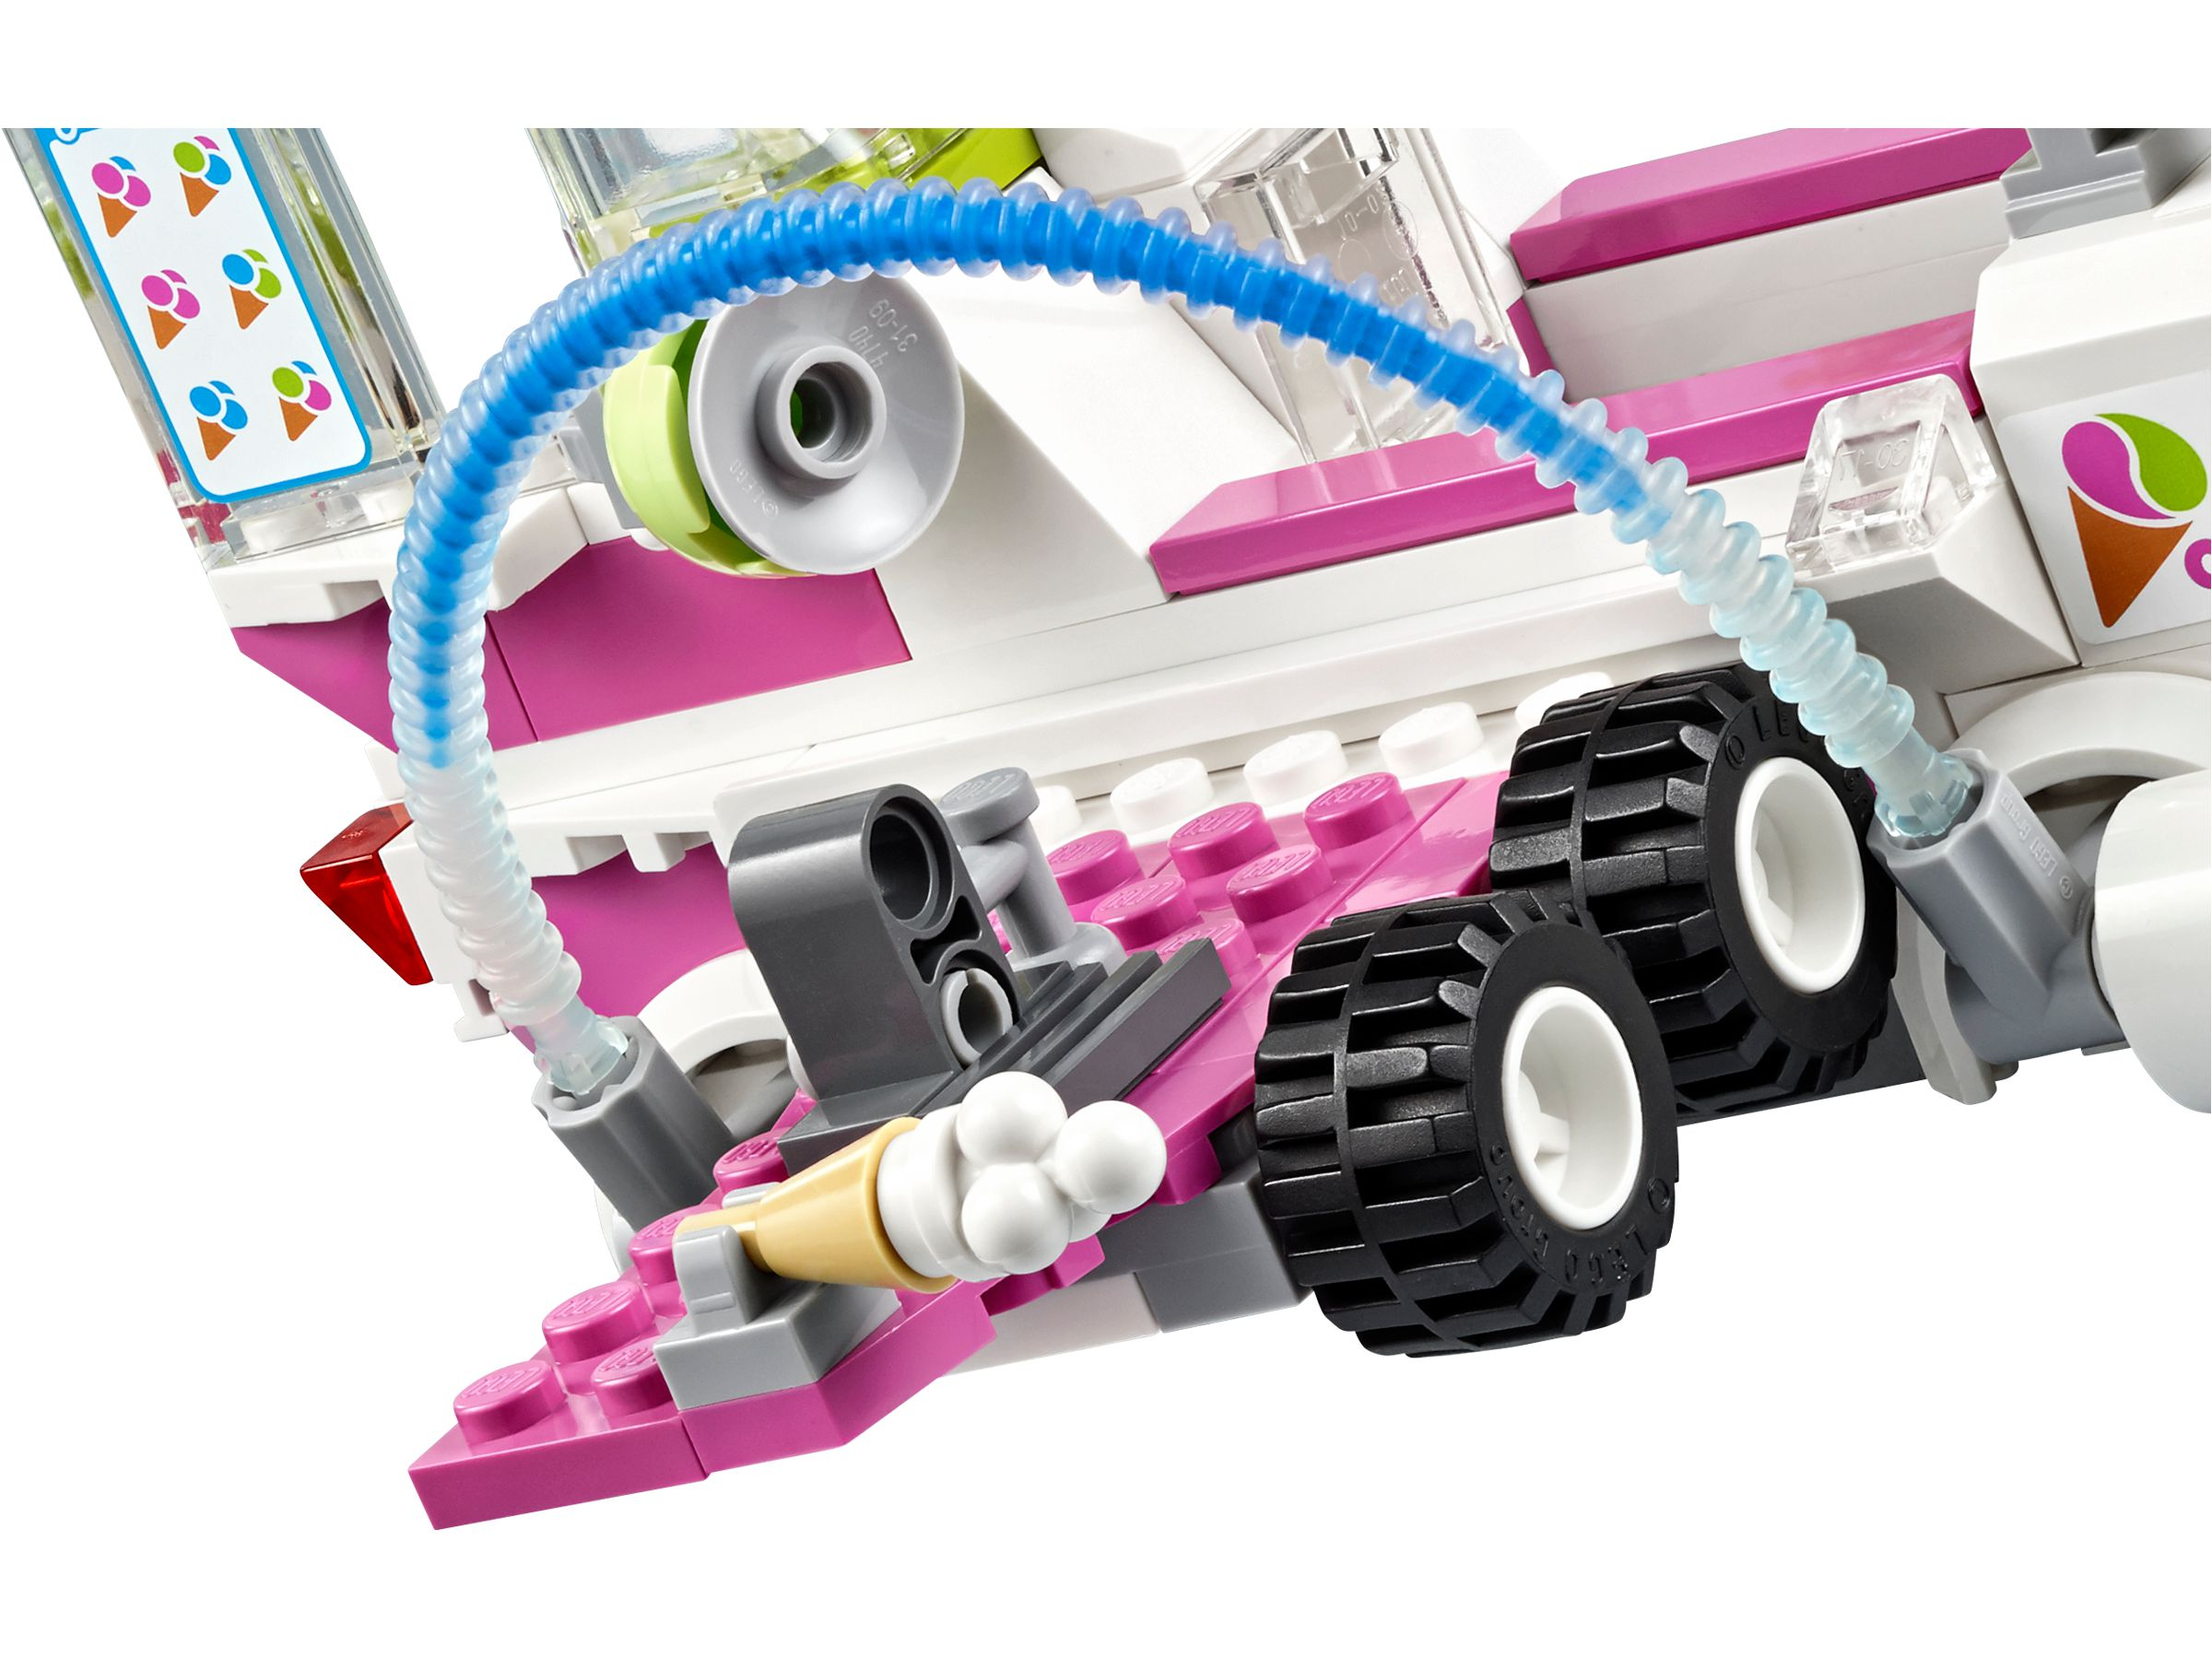 LEGO The LEGO Movie 70804 Eiscremewagen LEGO_70804_alt5.jpg